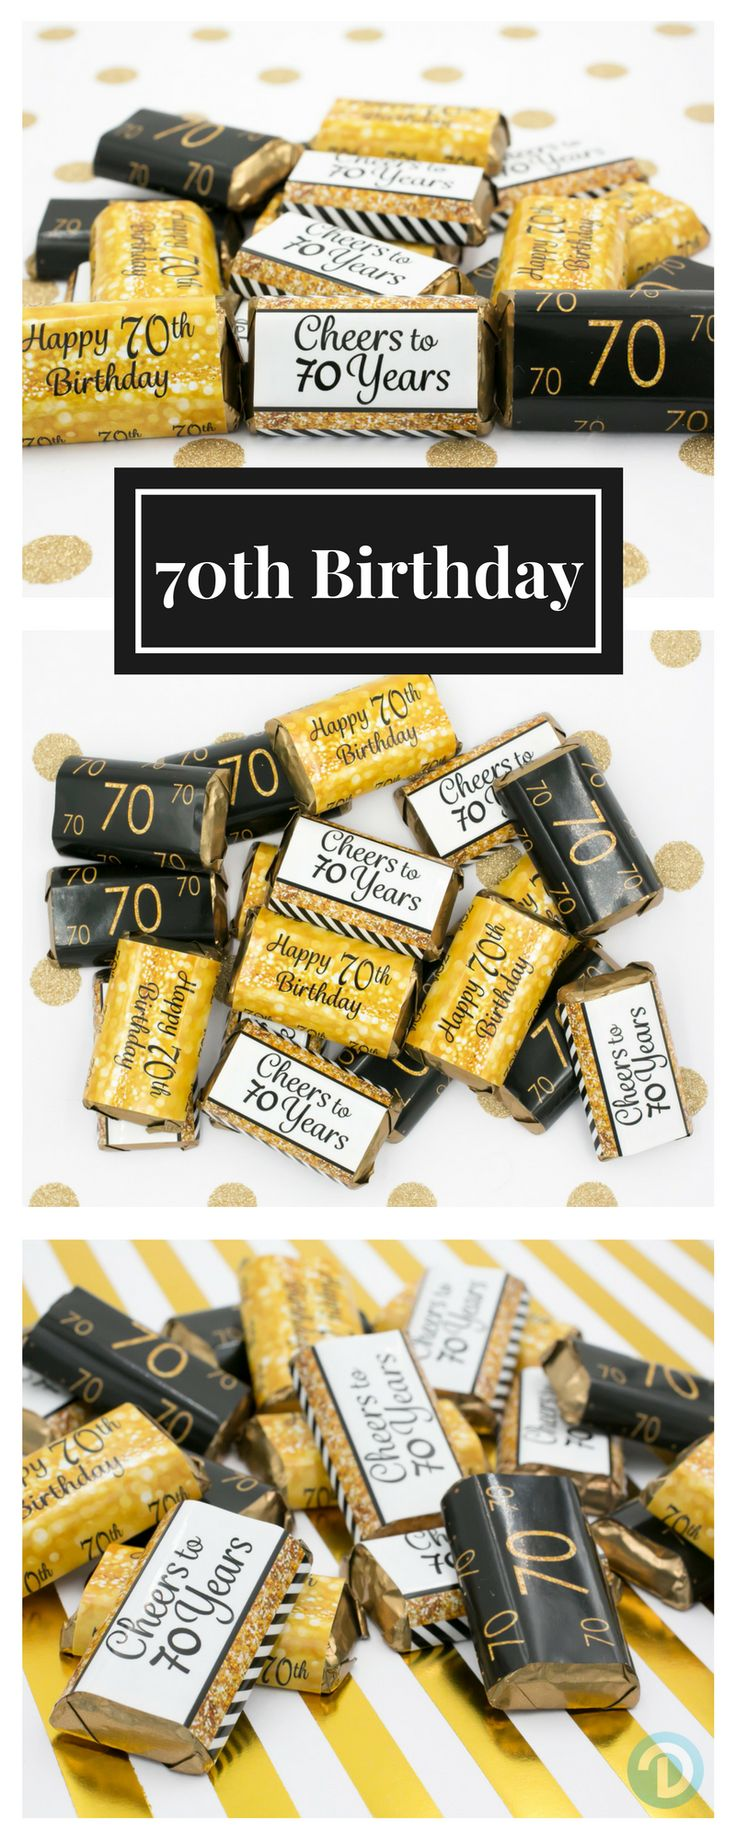 Say Cheers to 70 Years!  Fun Black & Gold themes Birthday Party Favor idea. #70thbirthday                                                                                                                                                                                 More